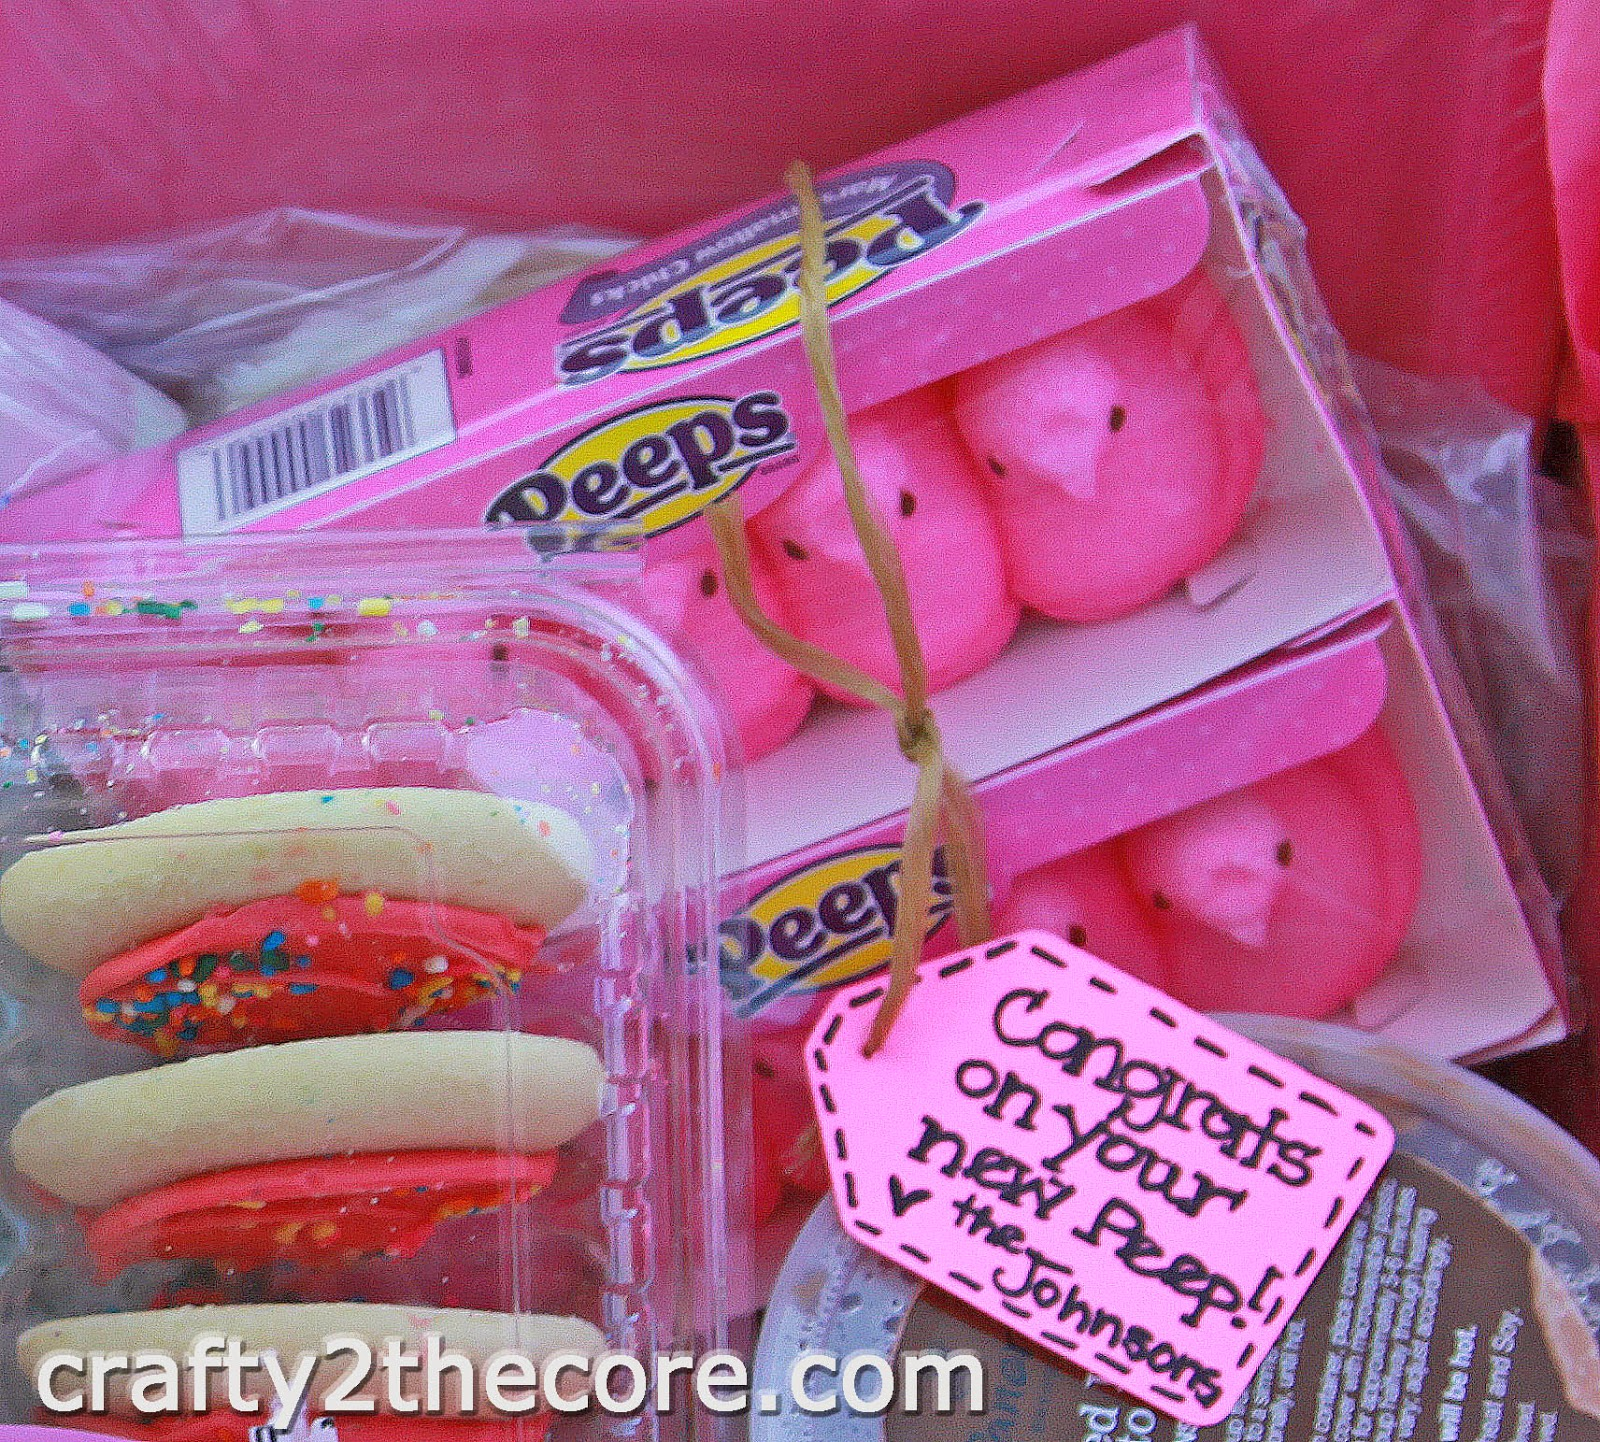 ~Cute Tag idea on PEEPS to Welcome a new baby included in a meal box for family.